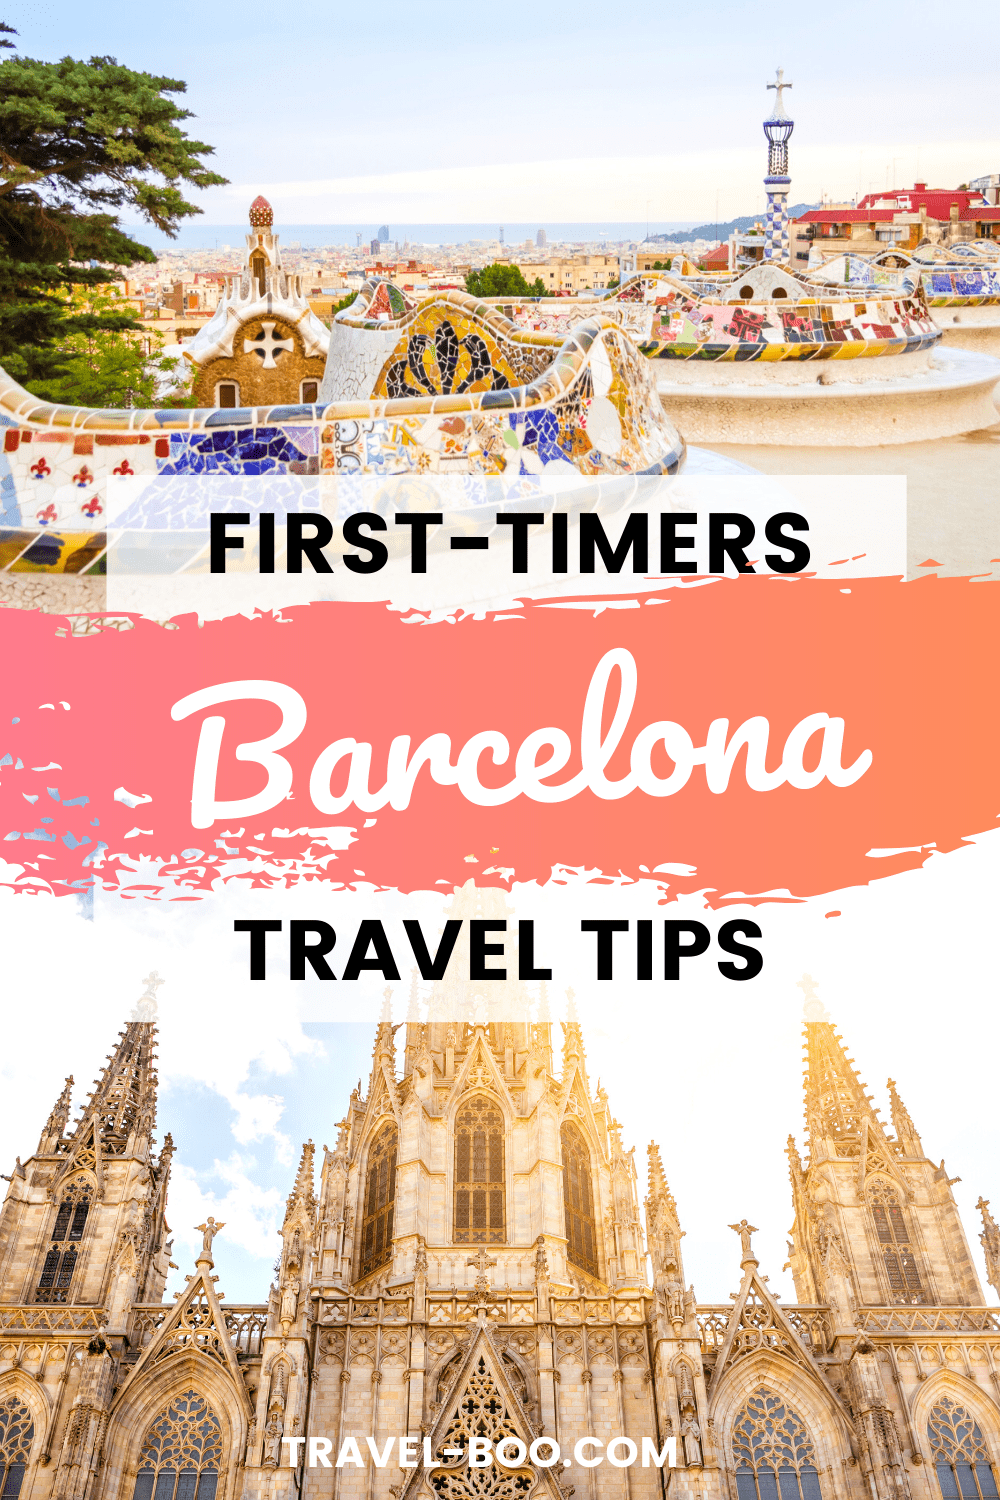 First-timers Travel Tips for visiting Barcelona, Spain! Barcelona Spain Travel | Barcelona Travel Tips | Barcelona Travel | Barcelona Travel Guide | Barcelona Travel things to do | Spain Travel | Spain Travel Guides | Spain Travel Tips! #barcelonatravel #barcelona #spain #spaintravel